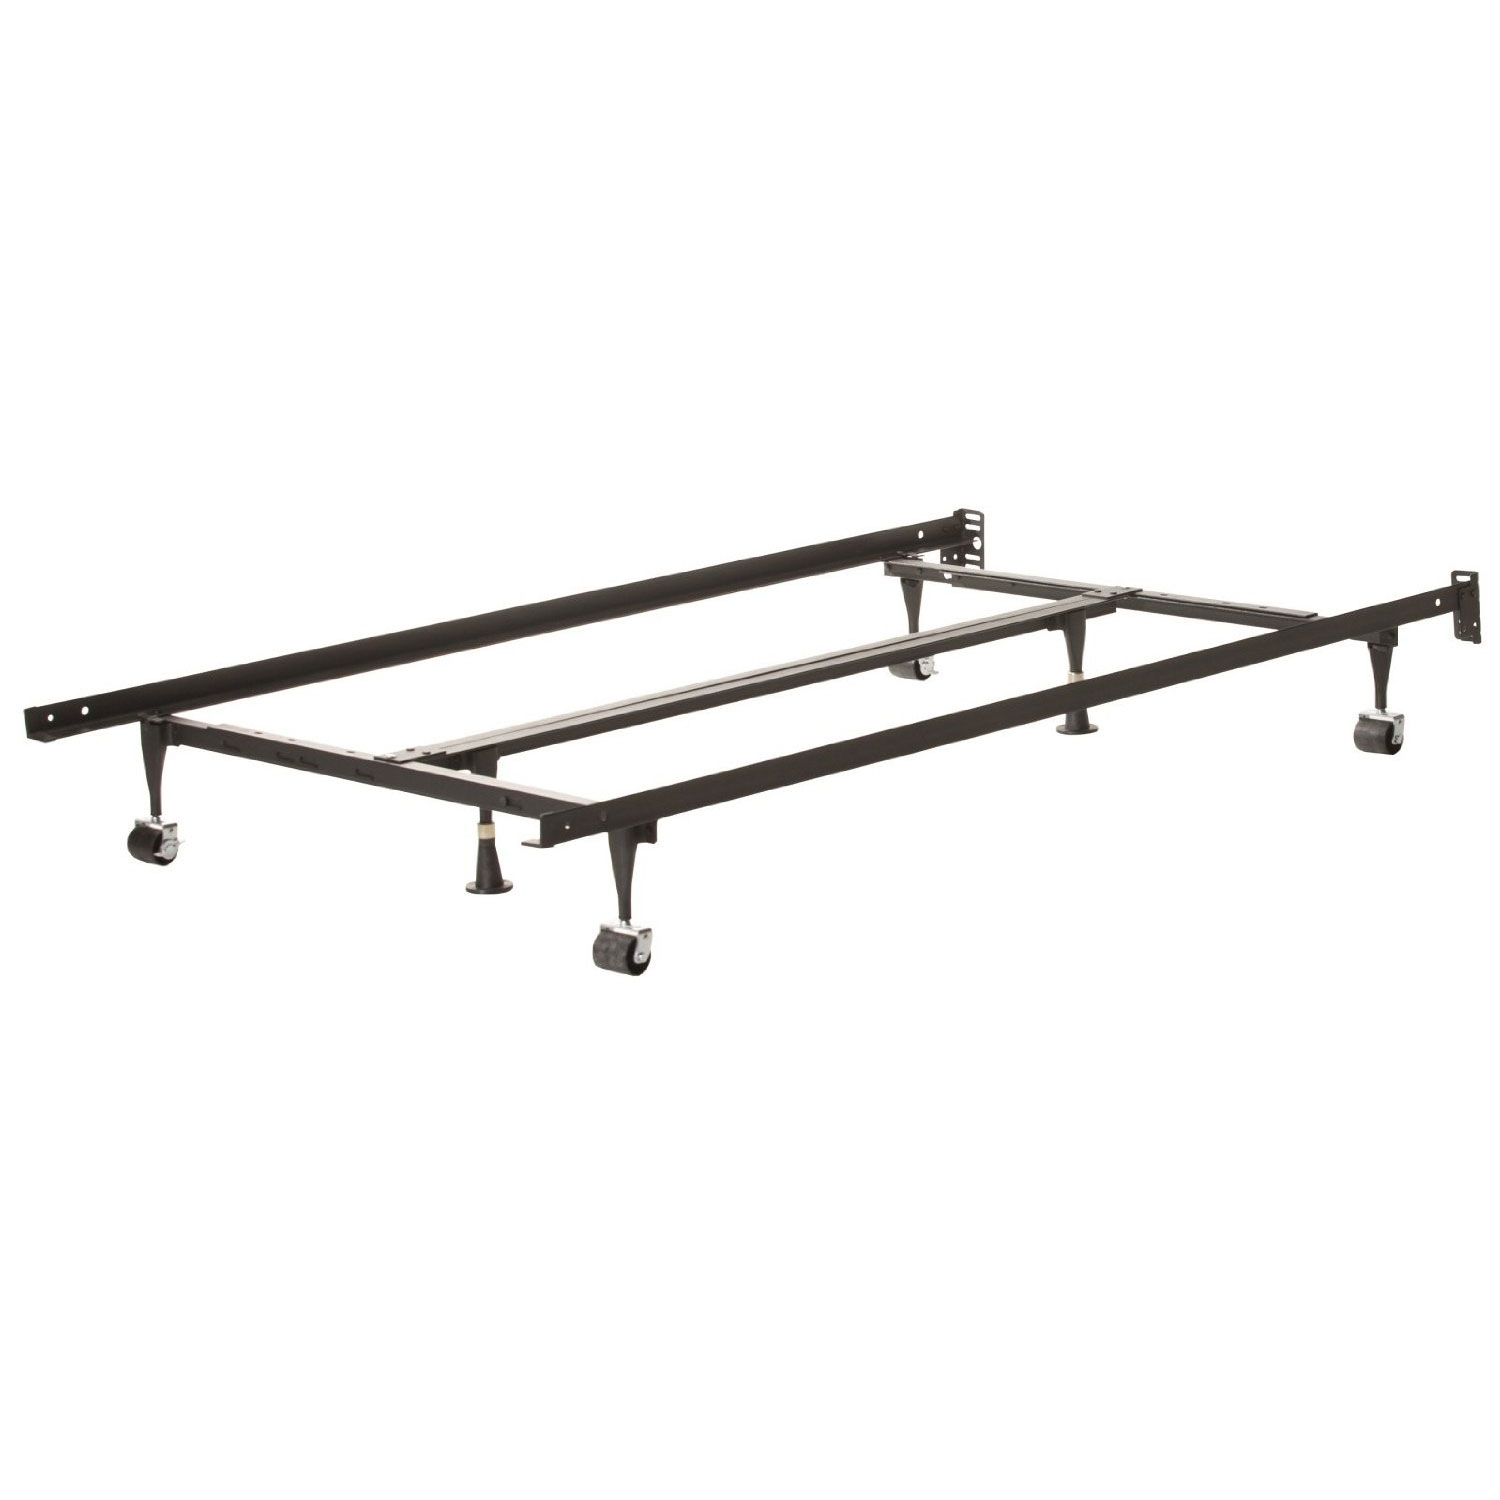 furniture parts metal bed frame